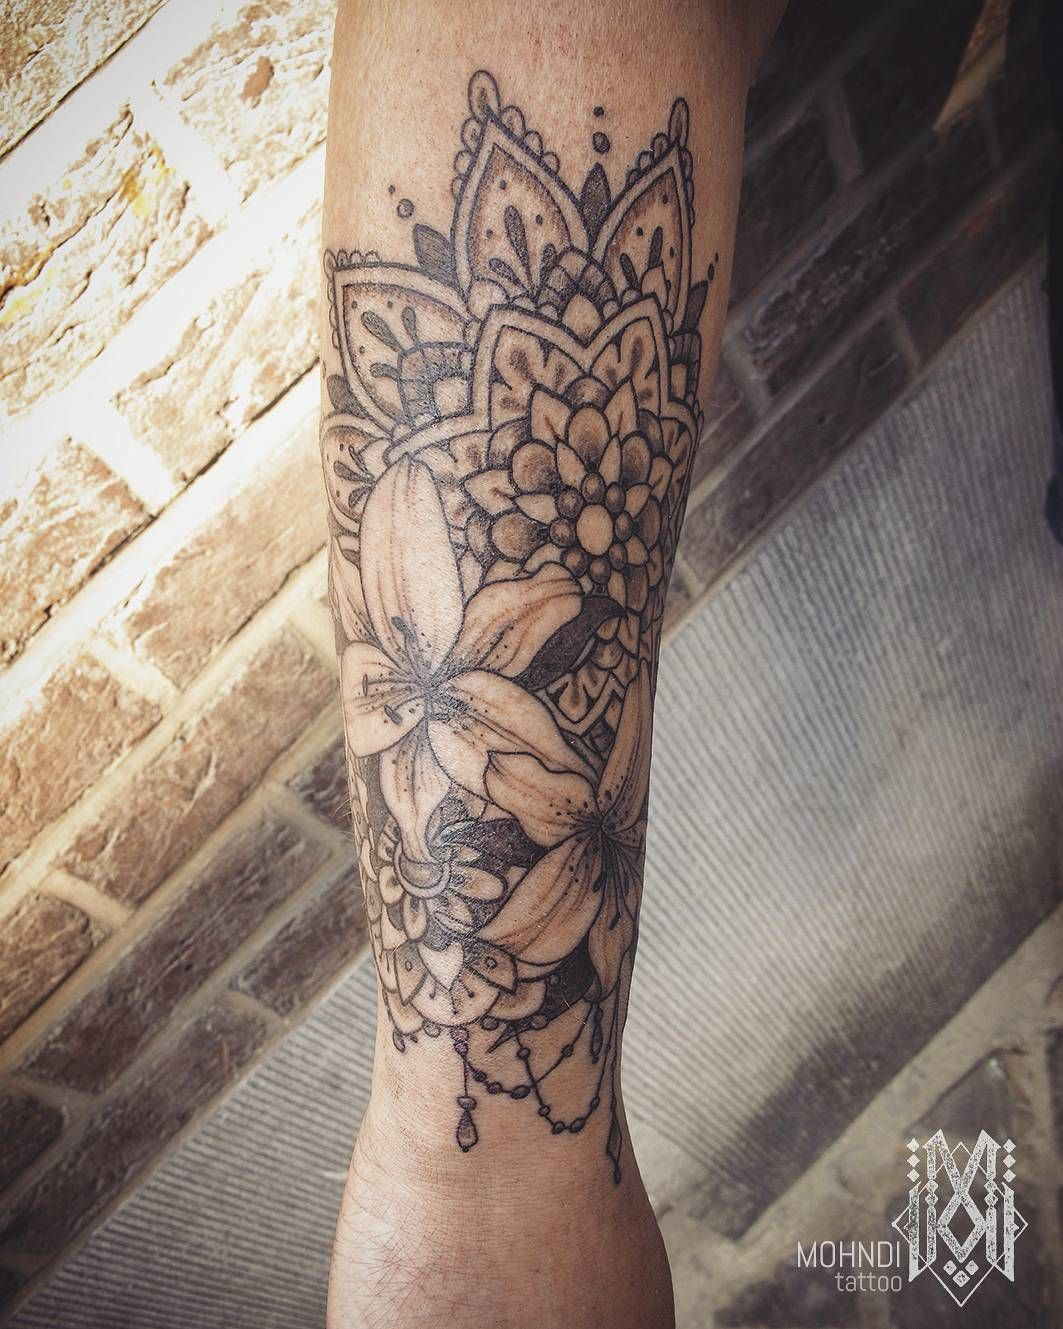 Lilydala ornamental jewels mandalas lily flowers by mo mohndi lilydala ornamental jewels mandalas lily flowers by mo mohndi tattoo izmirmasajfo